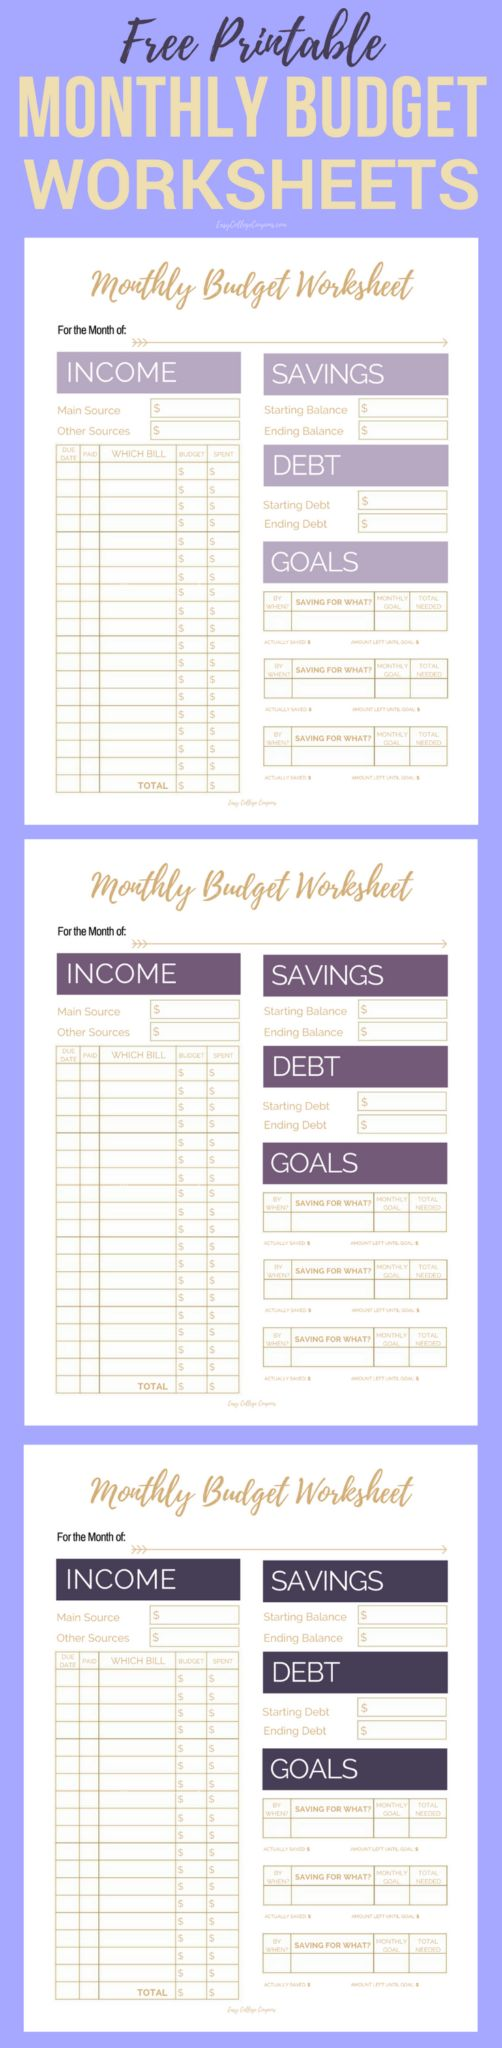 Worksheets Budget Worksheets Printable best 25 printable budget sheets ideas on pinterest monthly free worksheets